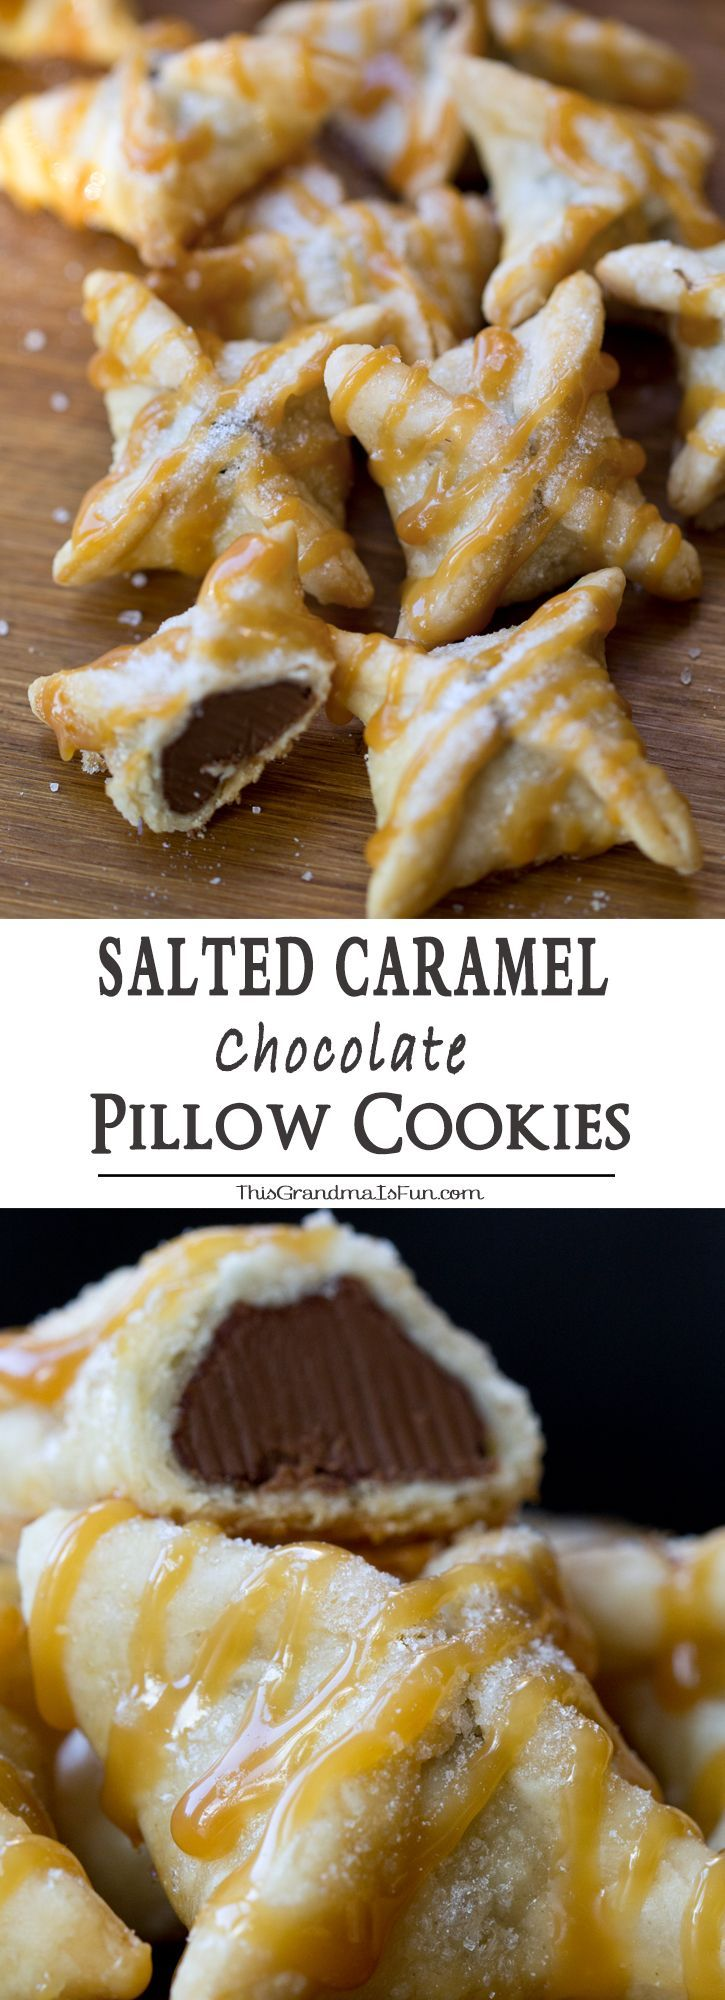 Salted Caramel Chocolate Pillow Cookies